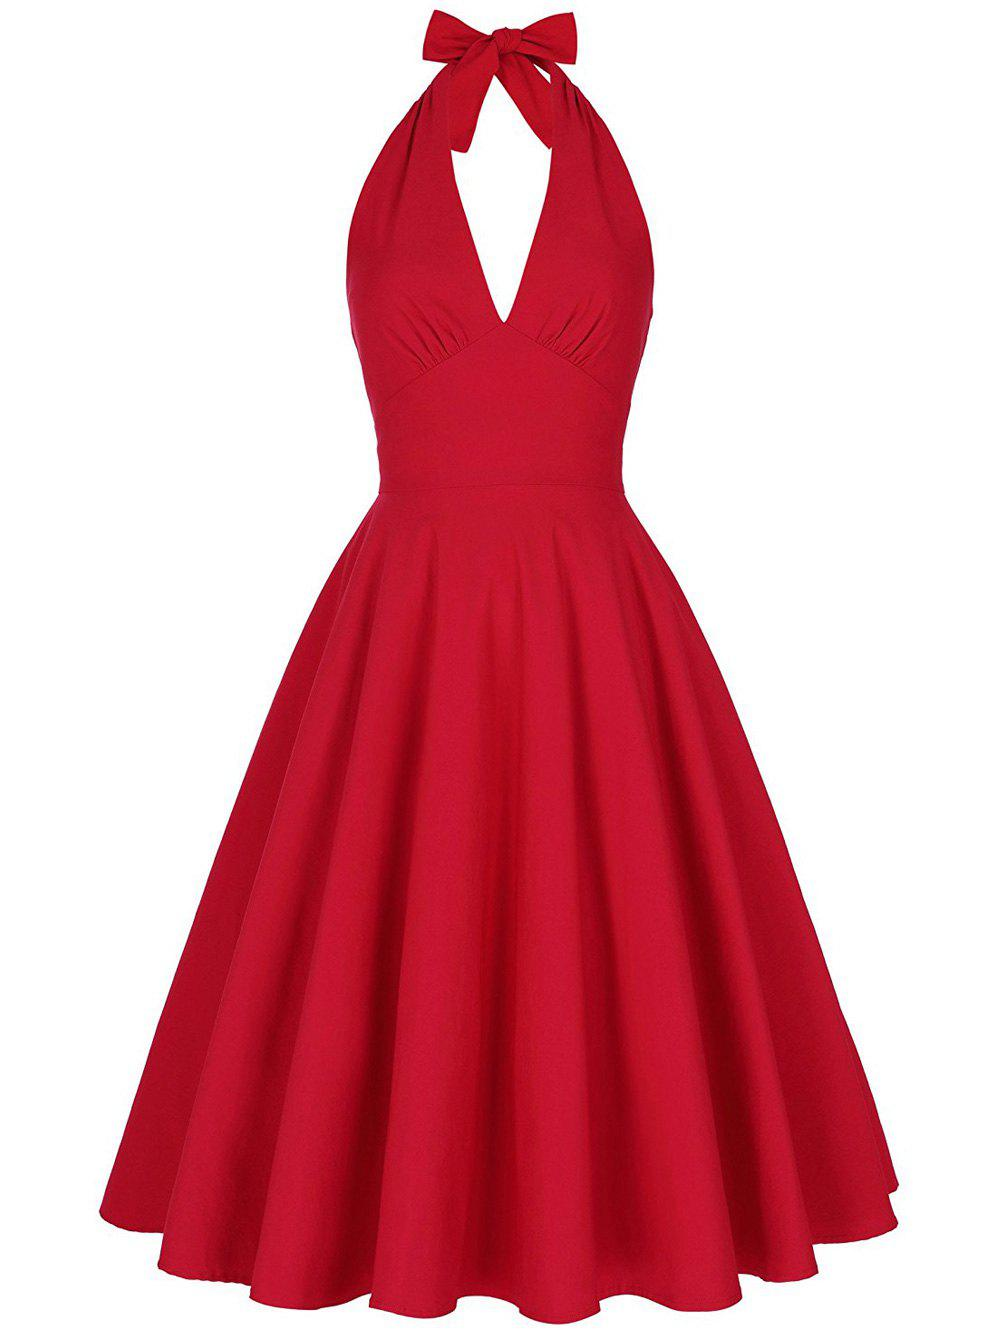 Sale Halter Low Back Plunge Work Christmas Party Dress